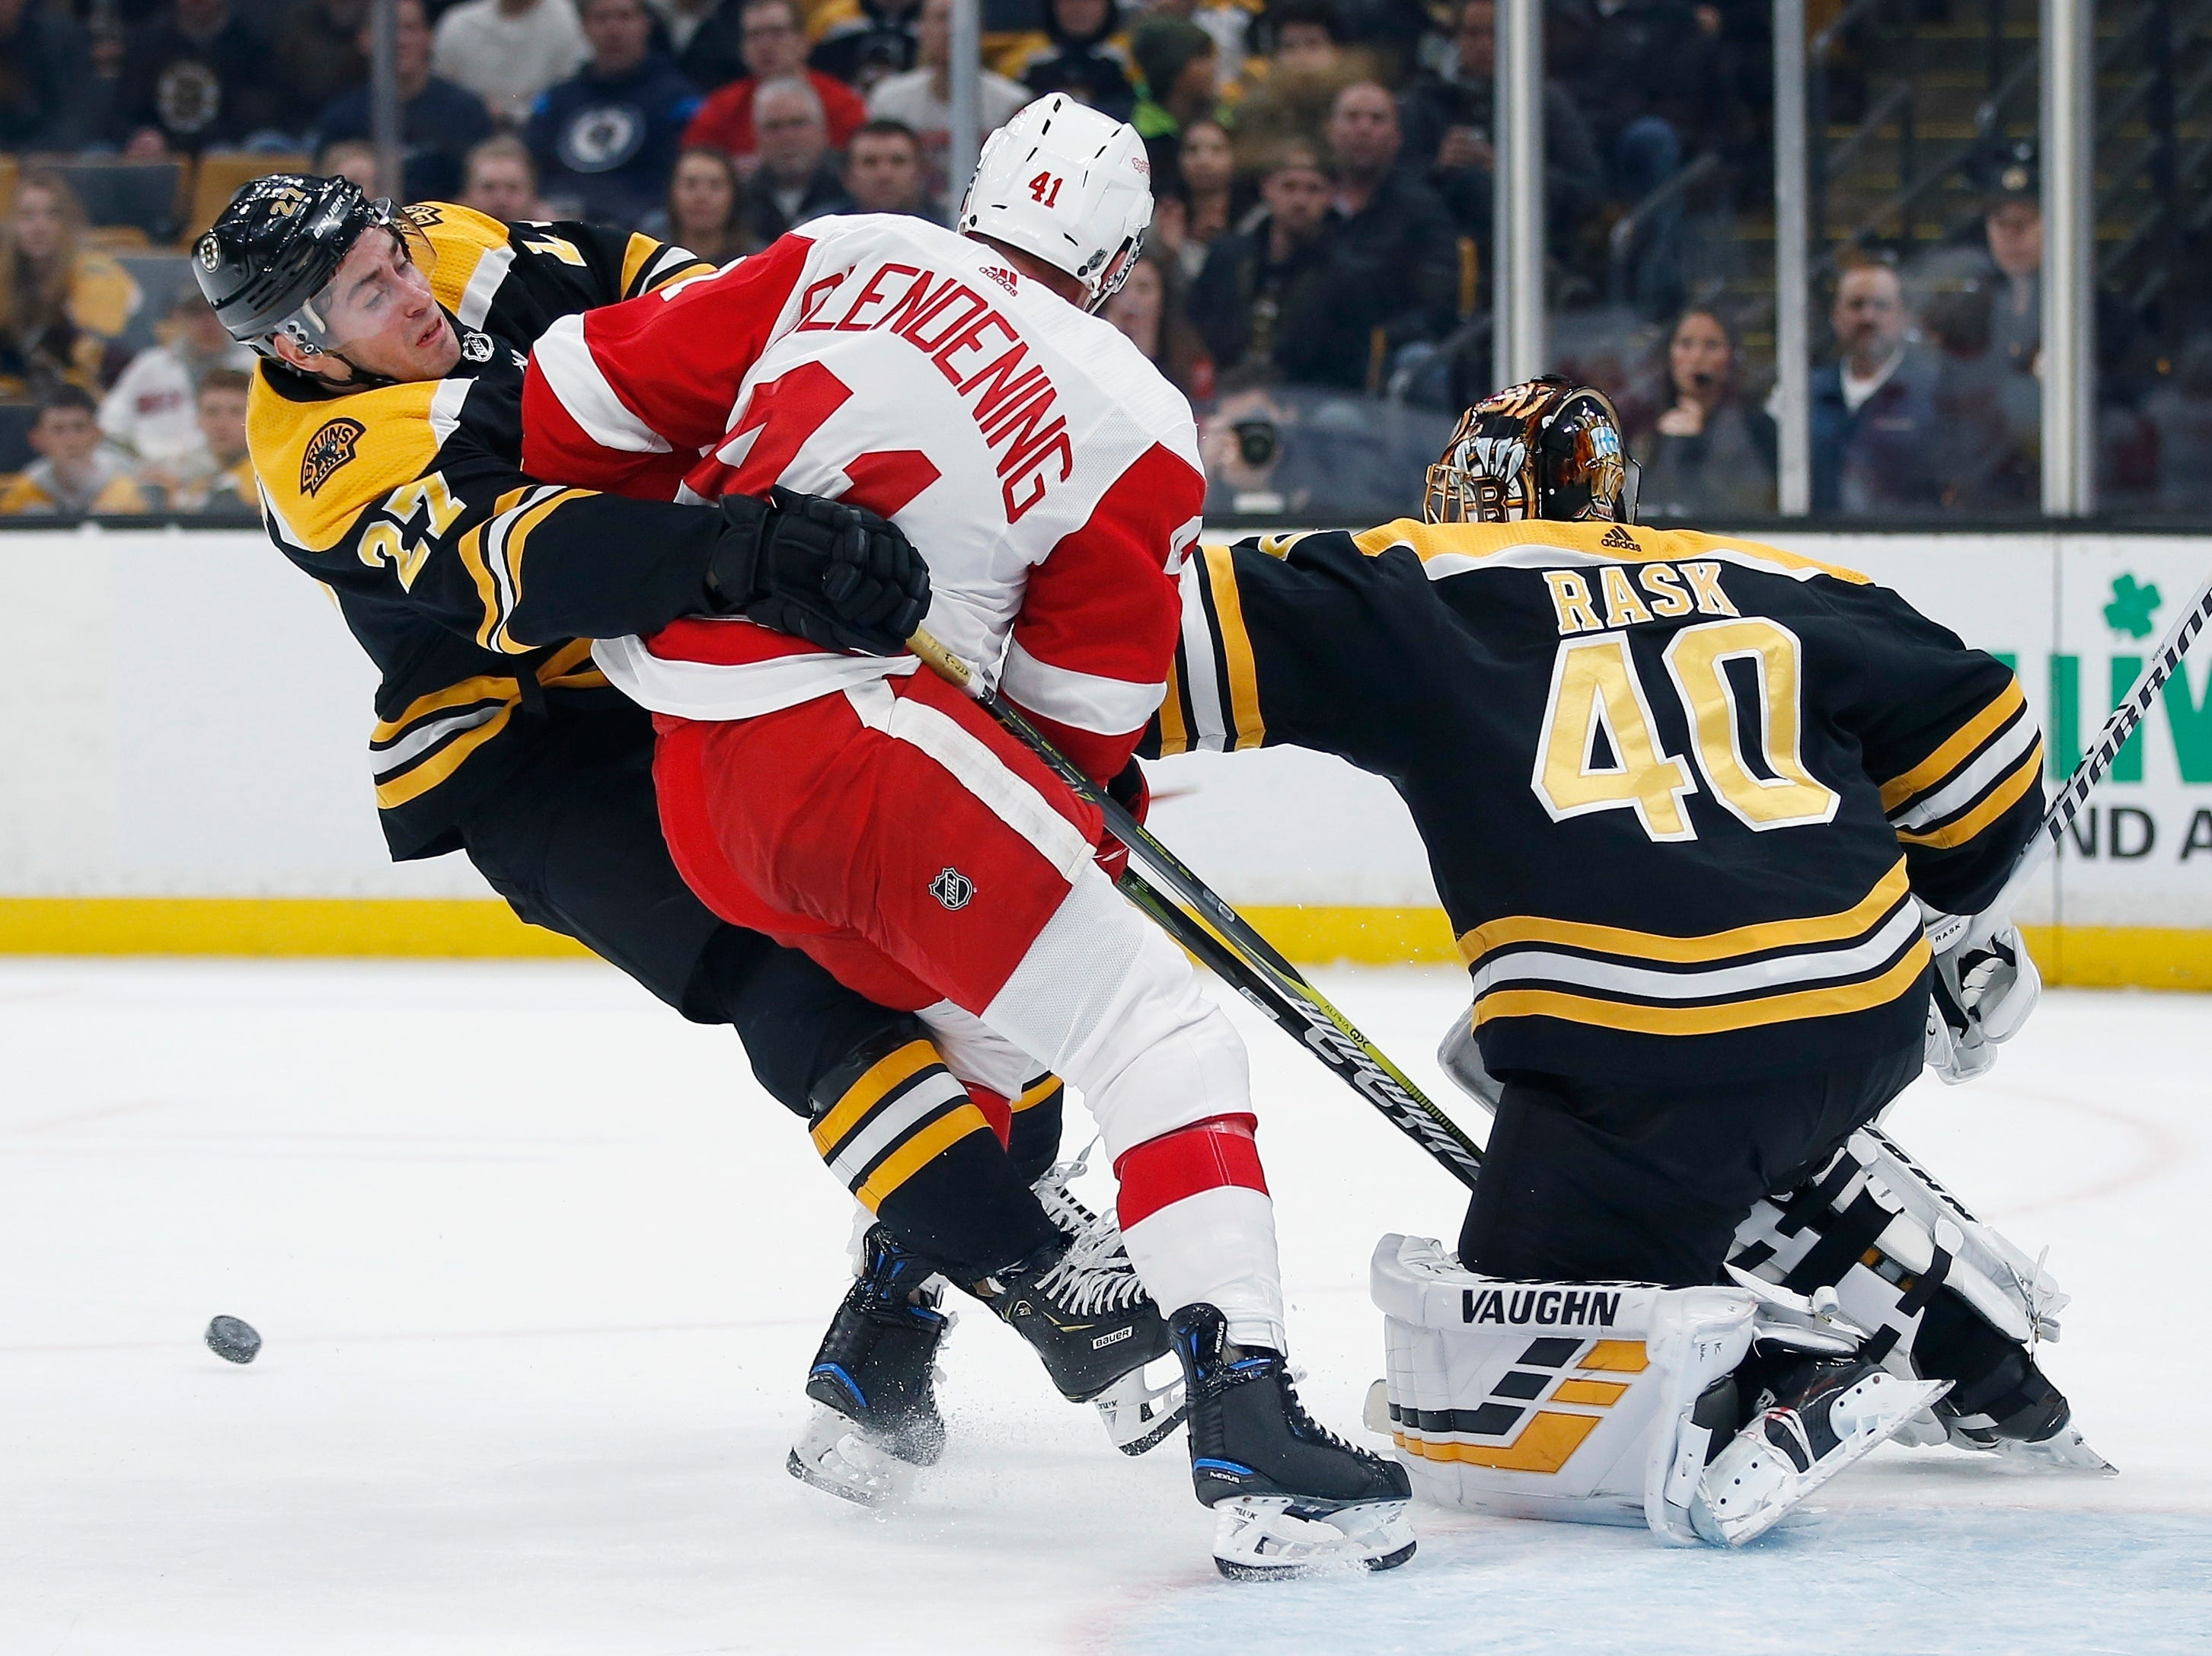 Boston Bruins' John Moore (27) blocks Detroit Red Wings' Luke Glendening from the rebound off goalie Tuukka Rask (40) during the first period.